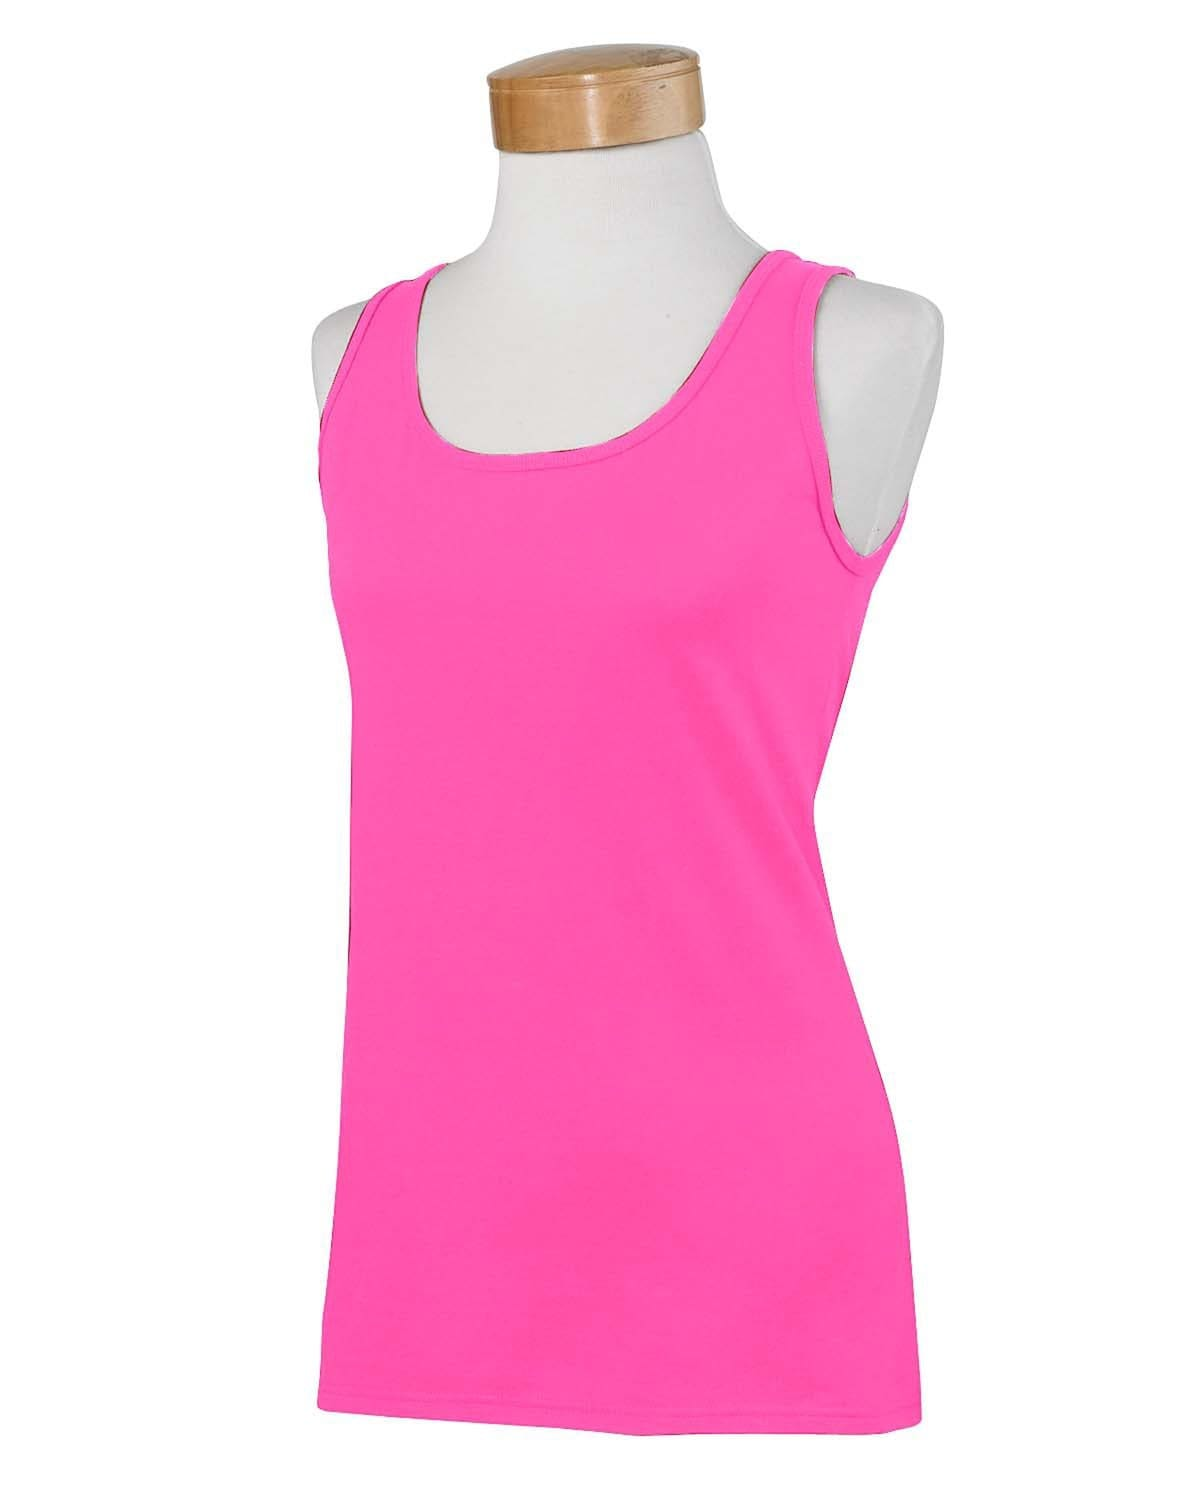 g642l-ladies-softstyle-4-5-oz-fitted-tank-Small-AZALEA-Oasispromos